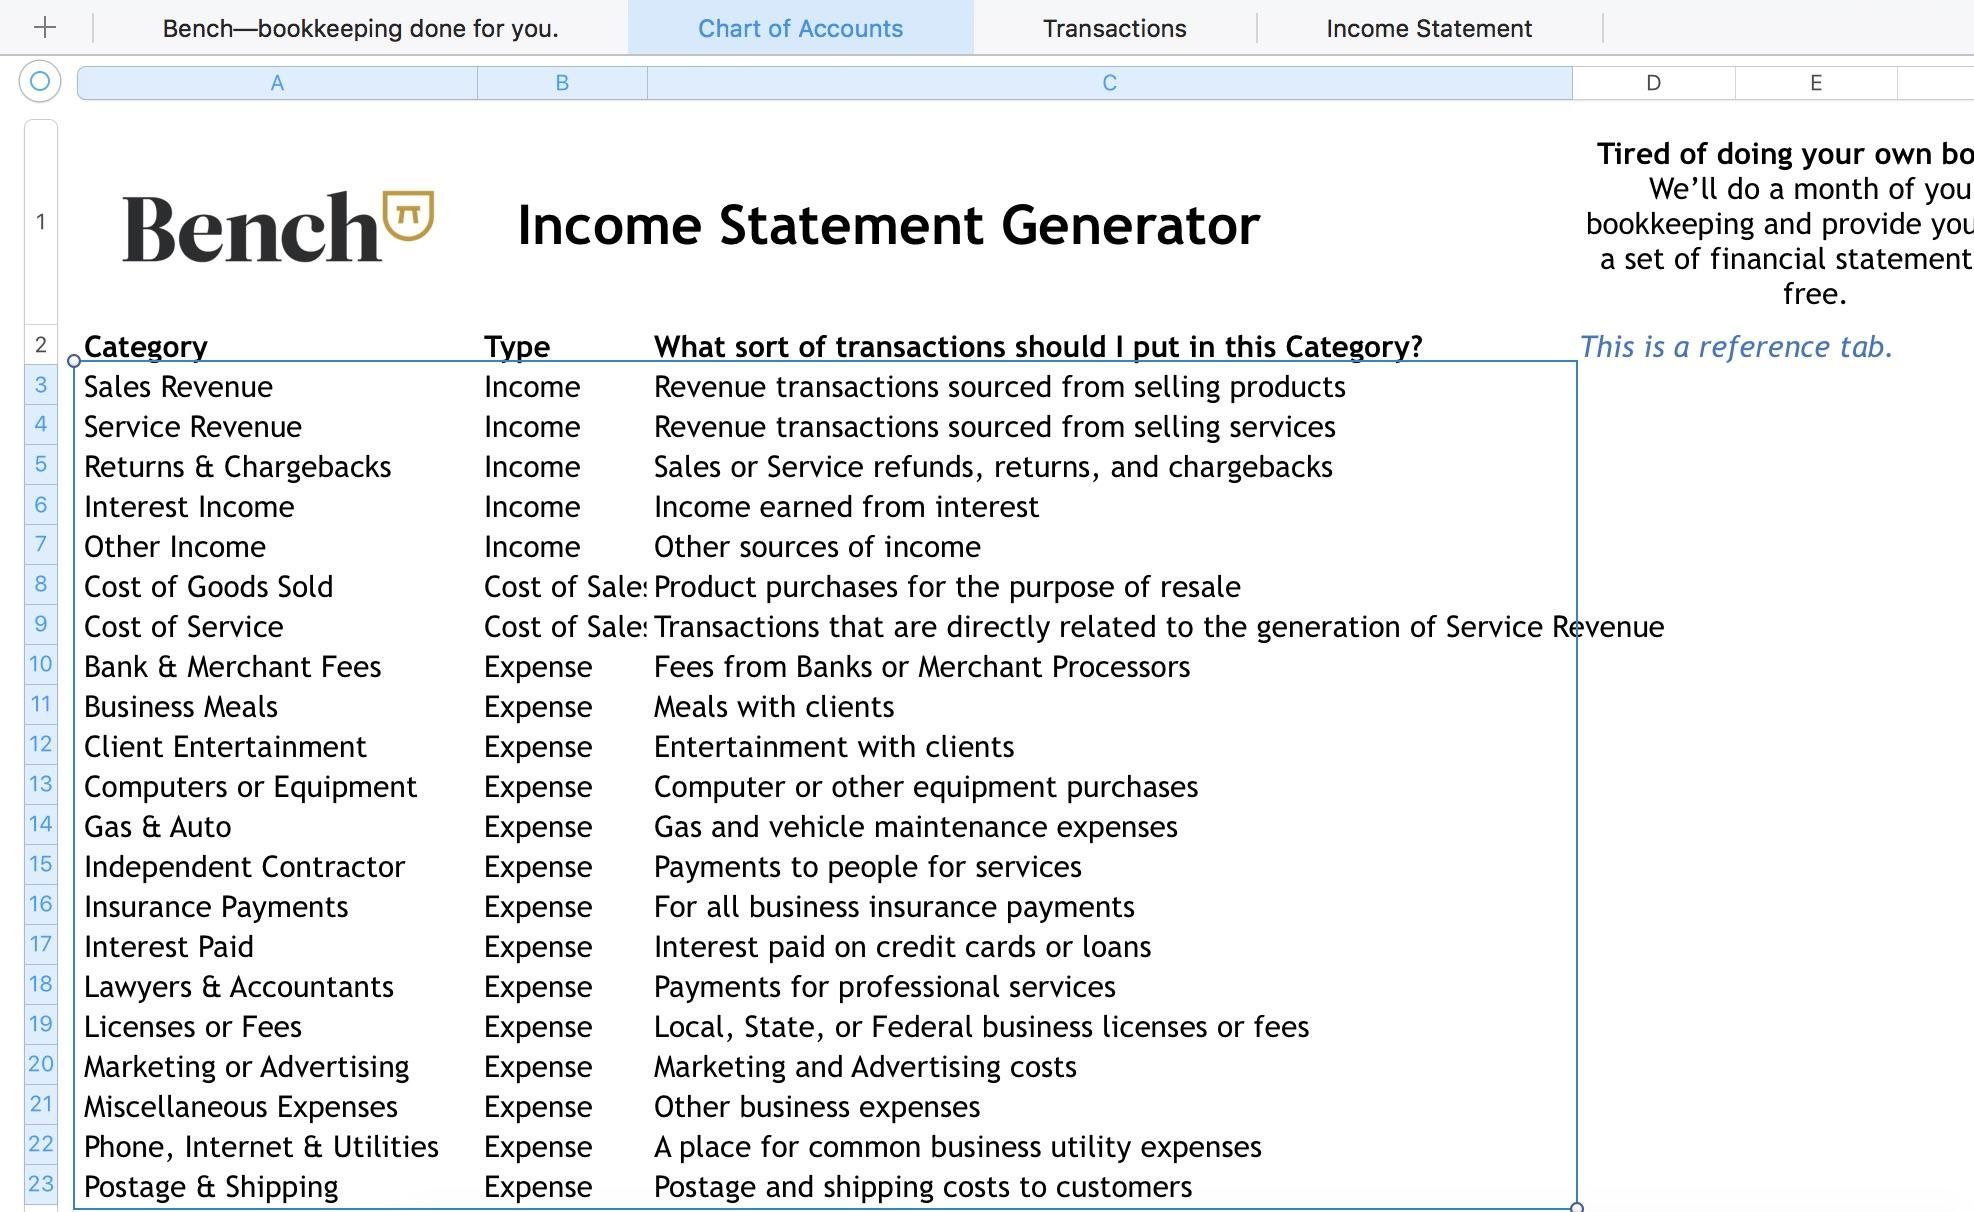 006 Unbelievable Monthly Income Statement Format Excel Photo  Free DownloadFull